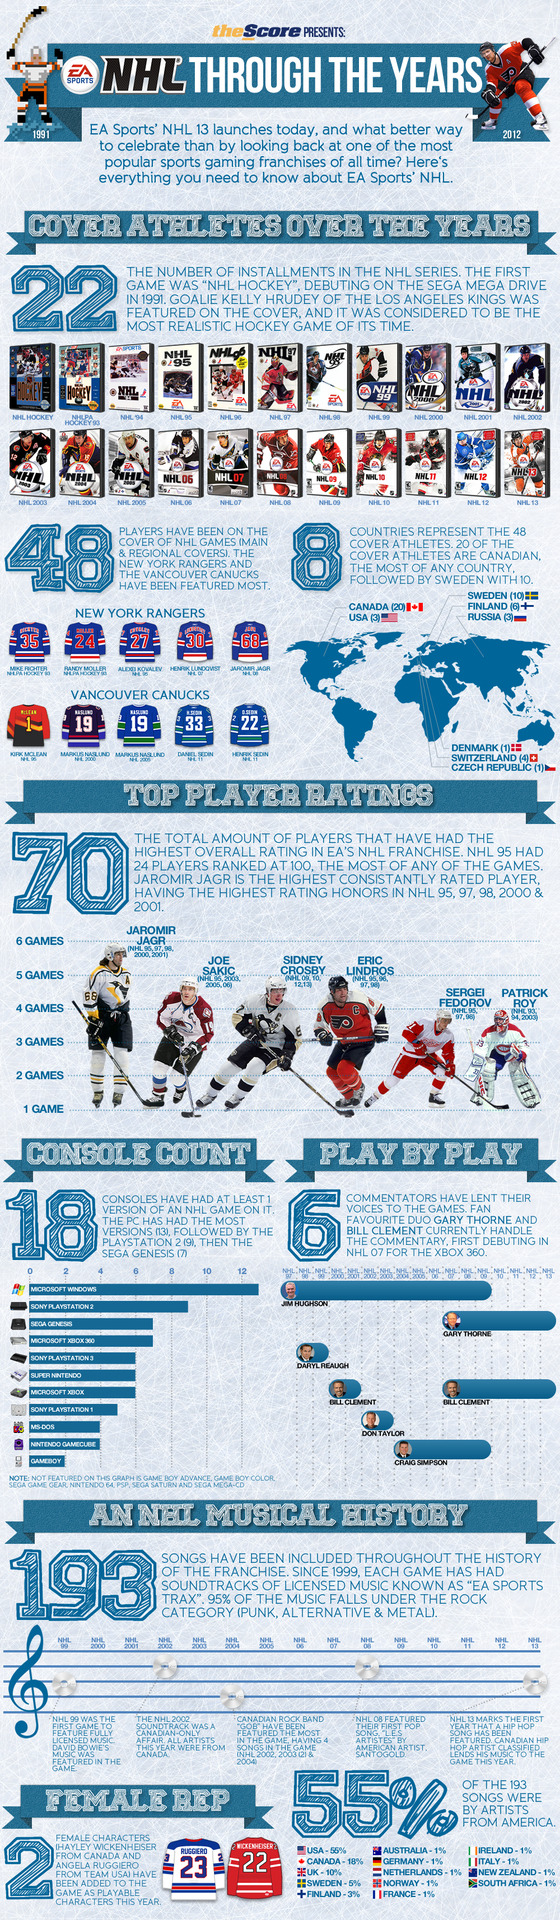 Infographic: @EASportsNHL through the years.